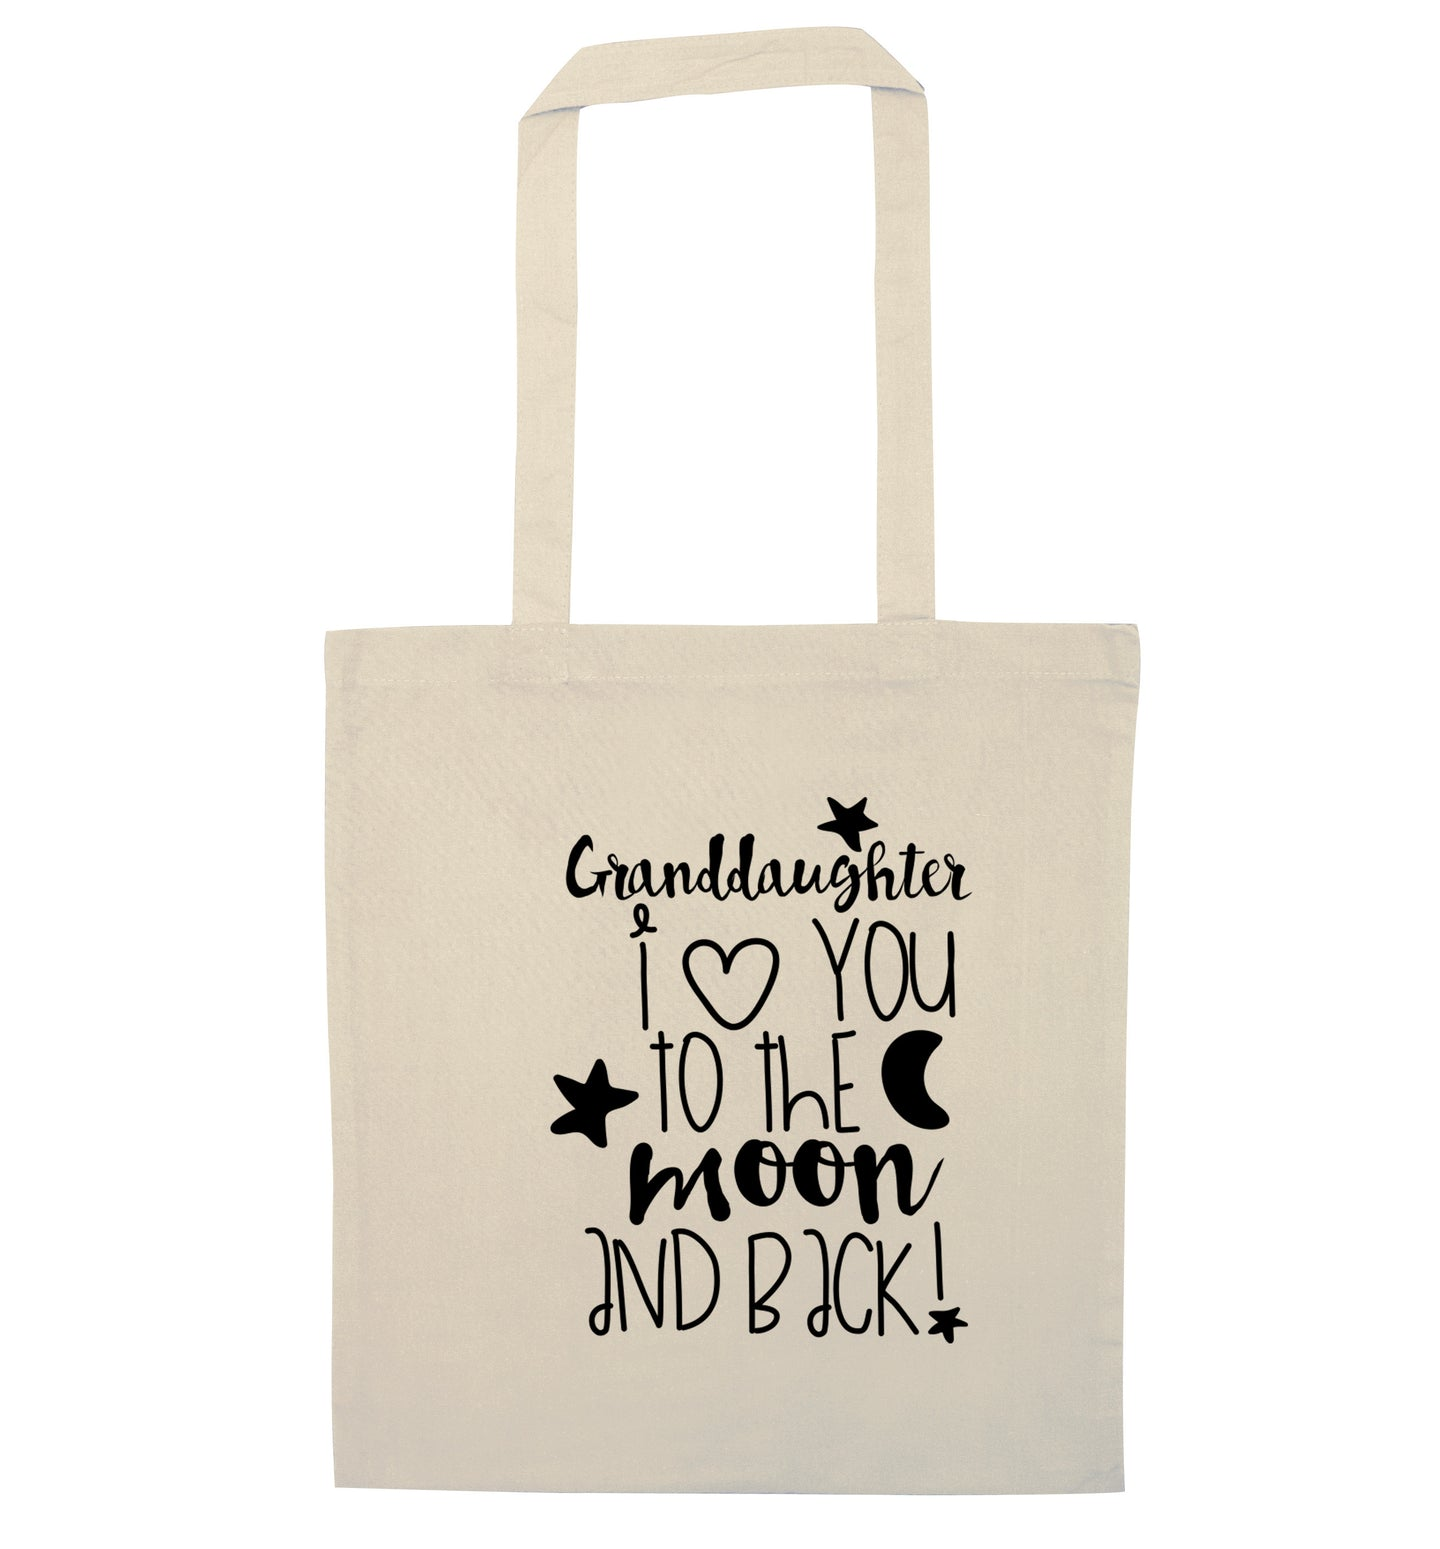 Granddaughter I love you to the moon and back natural tote bag